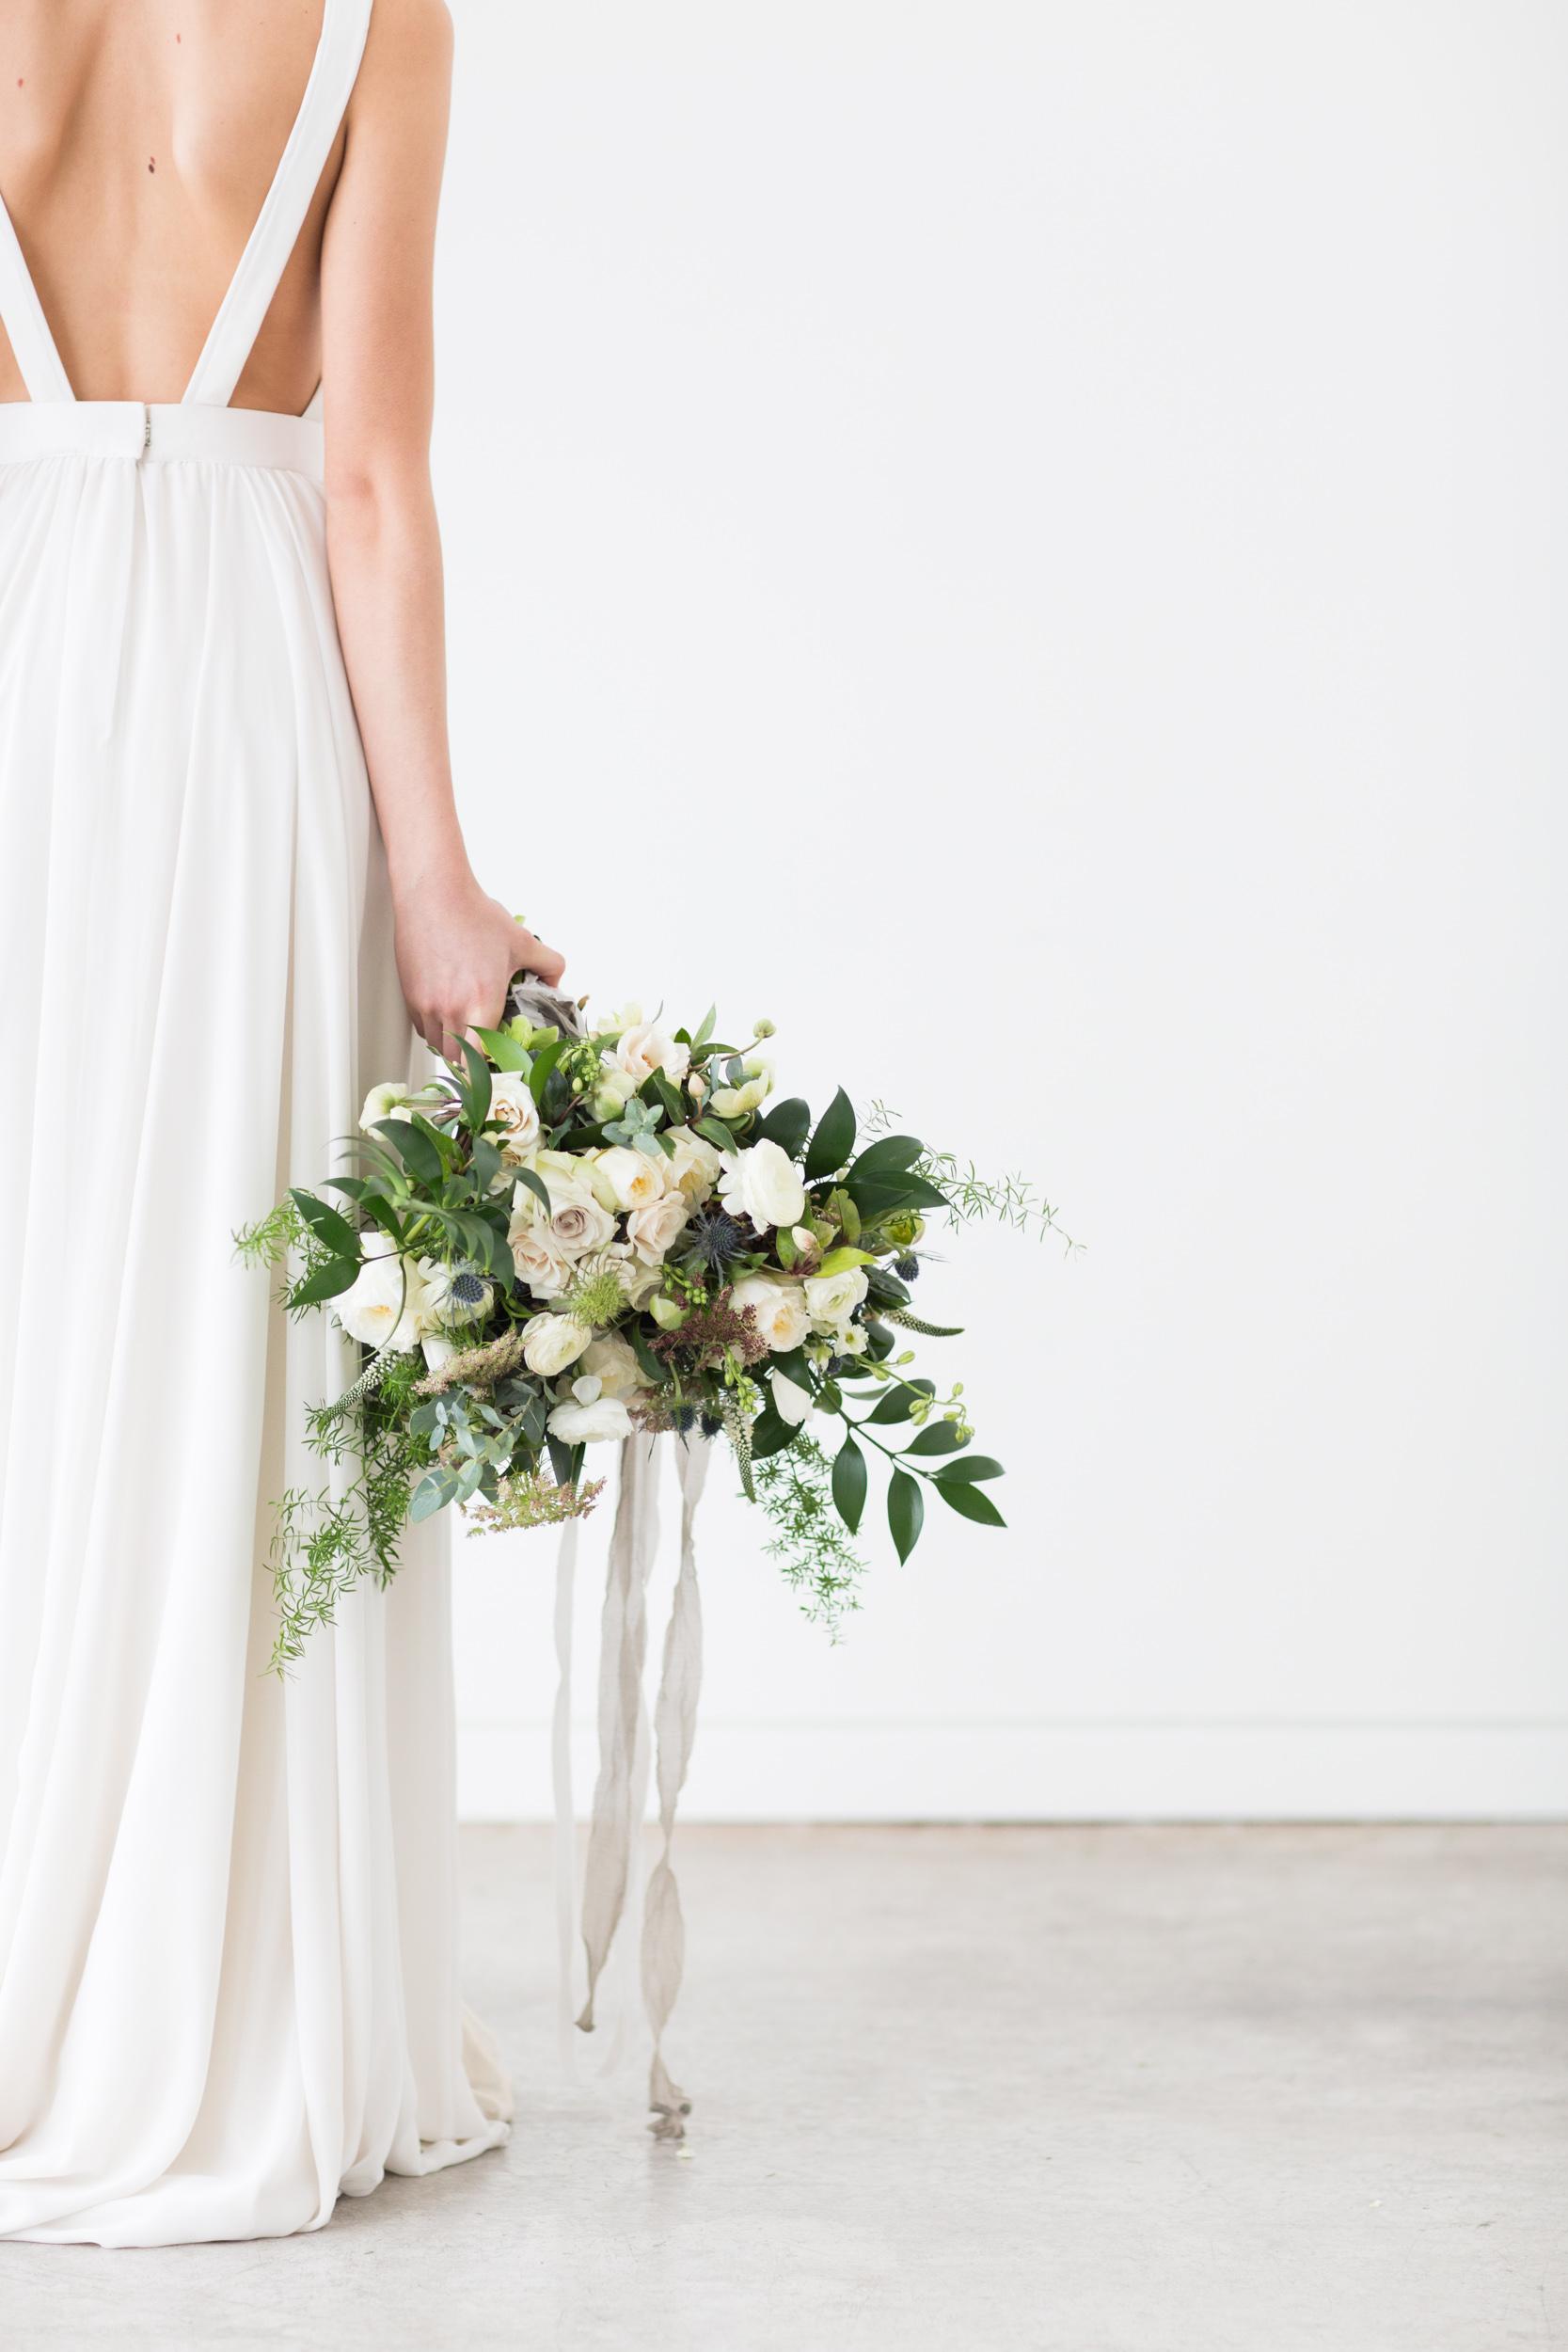 Truvelle Brianna dress and lush green and white bouquet by A Fine Medley